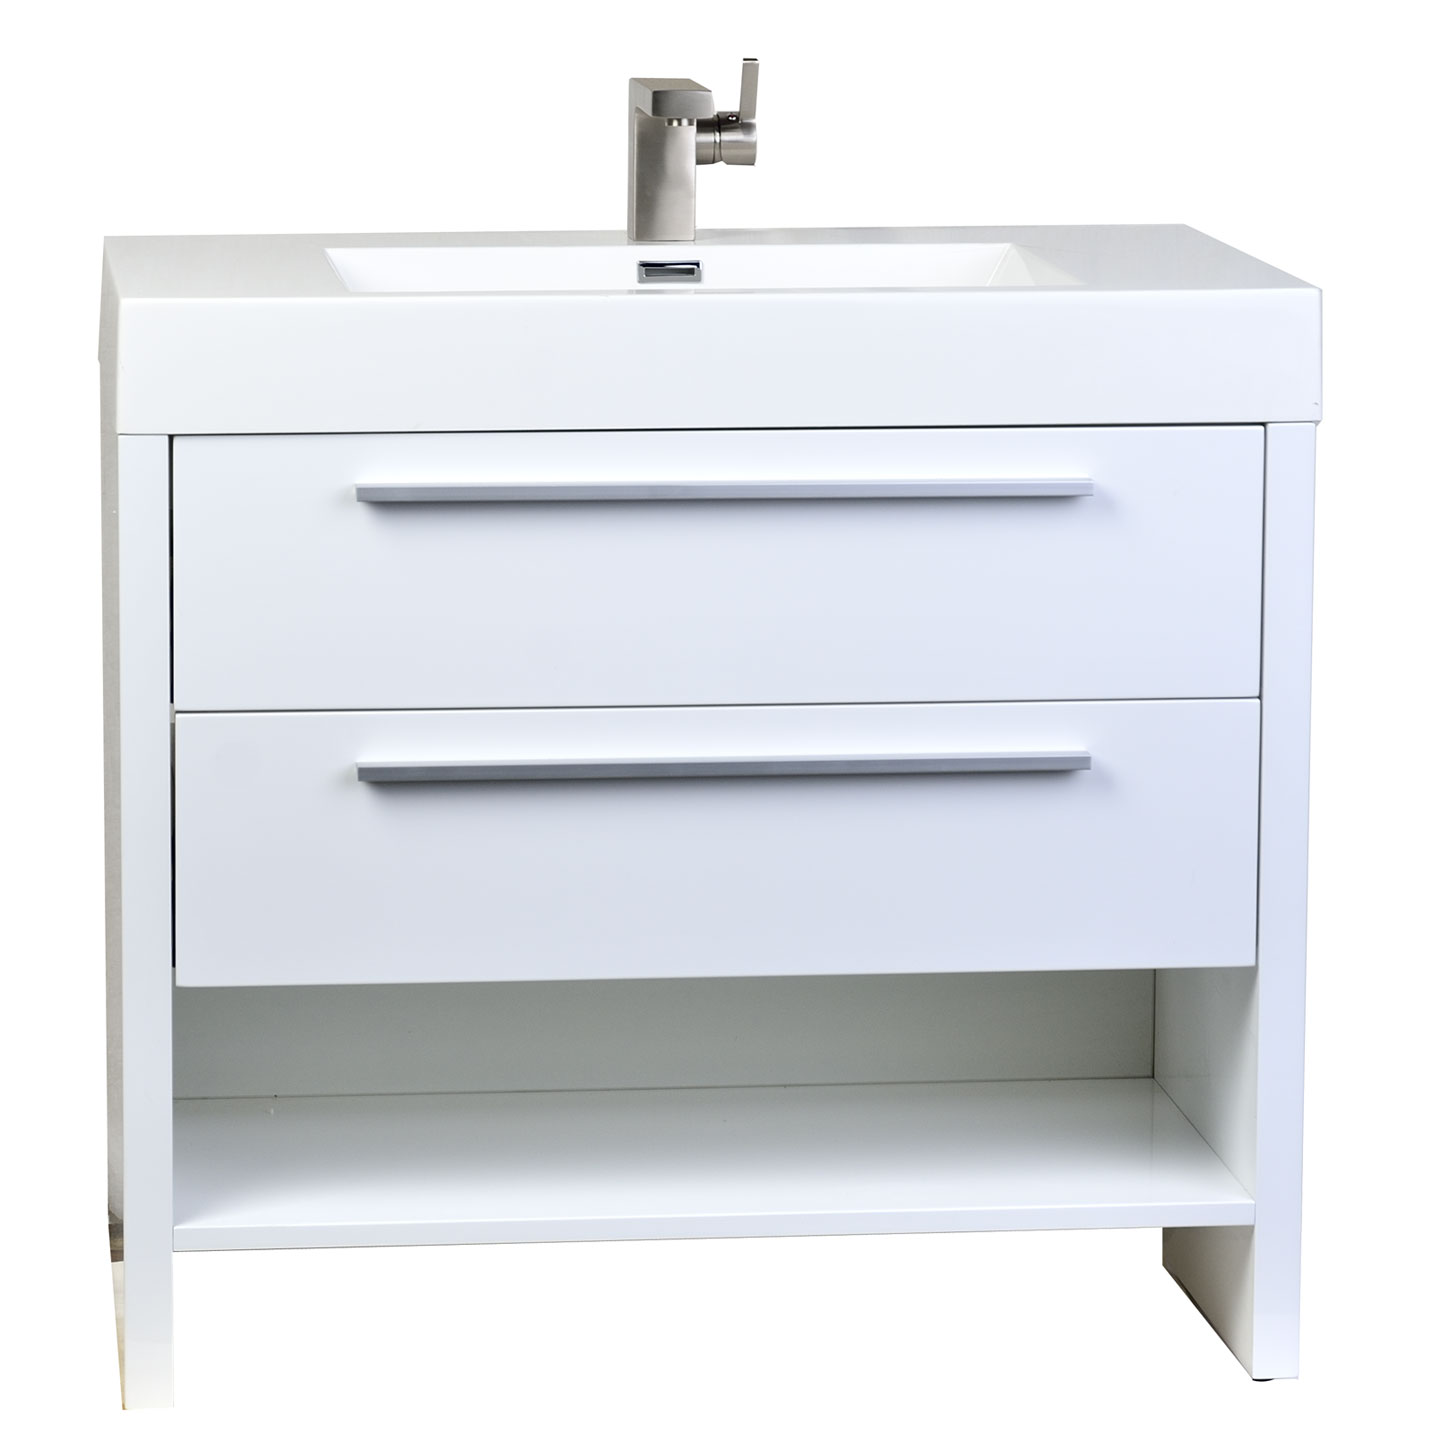 single cabinet inspiration sink all modern vanity with colton fresh drawer of drawers unique about bathroom under inch ideas